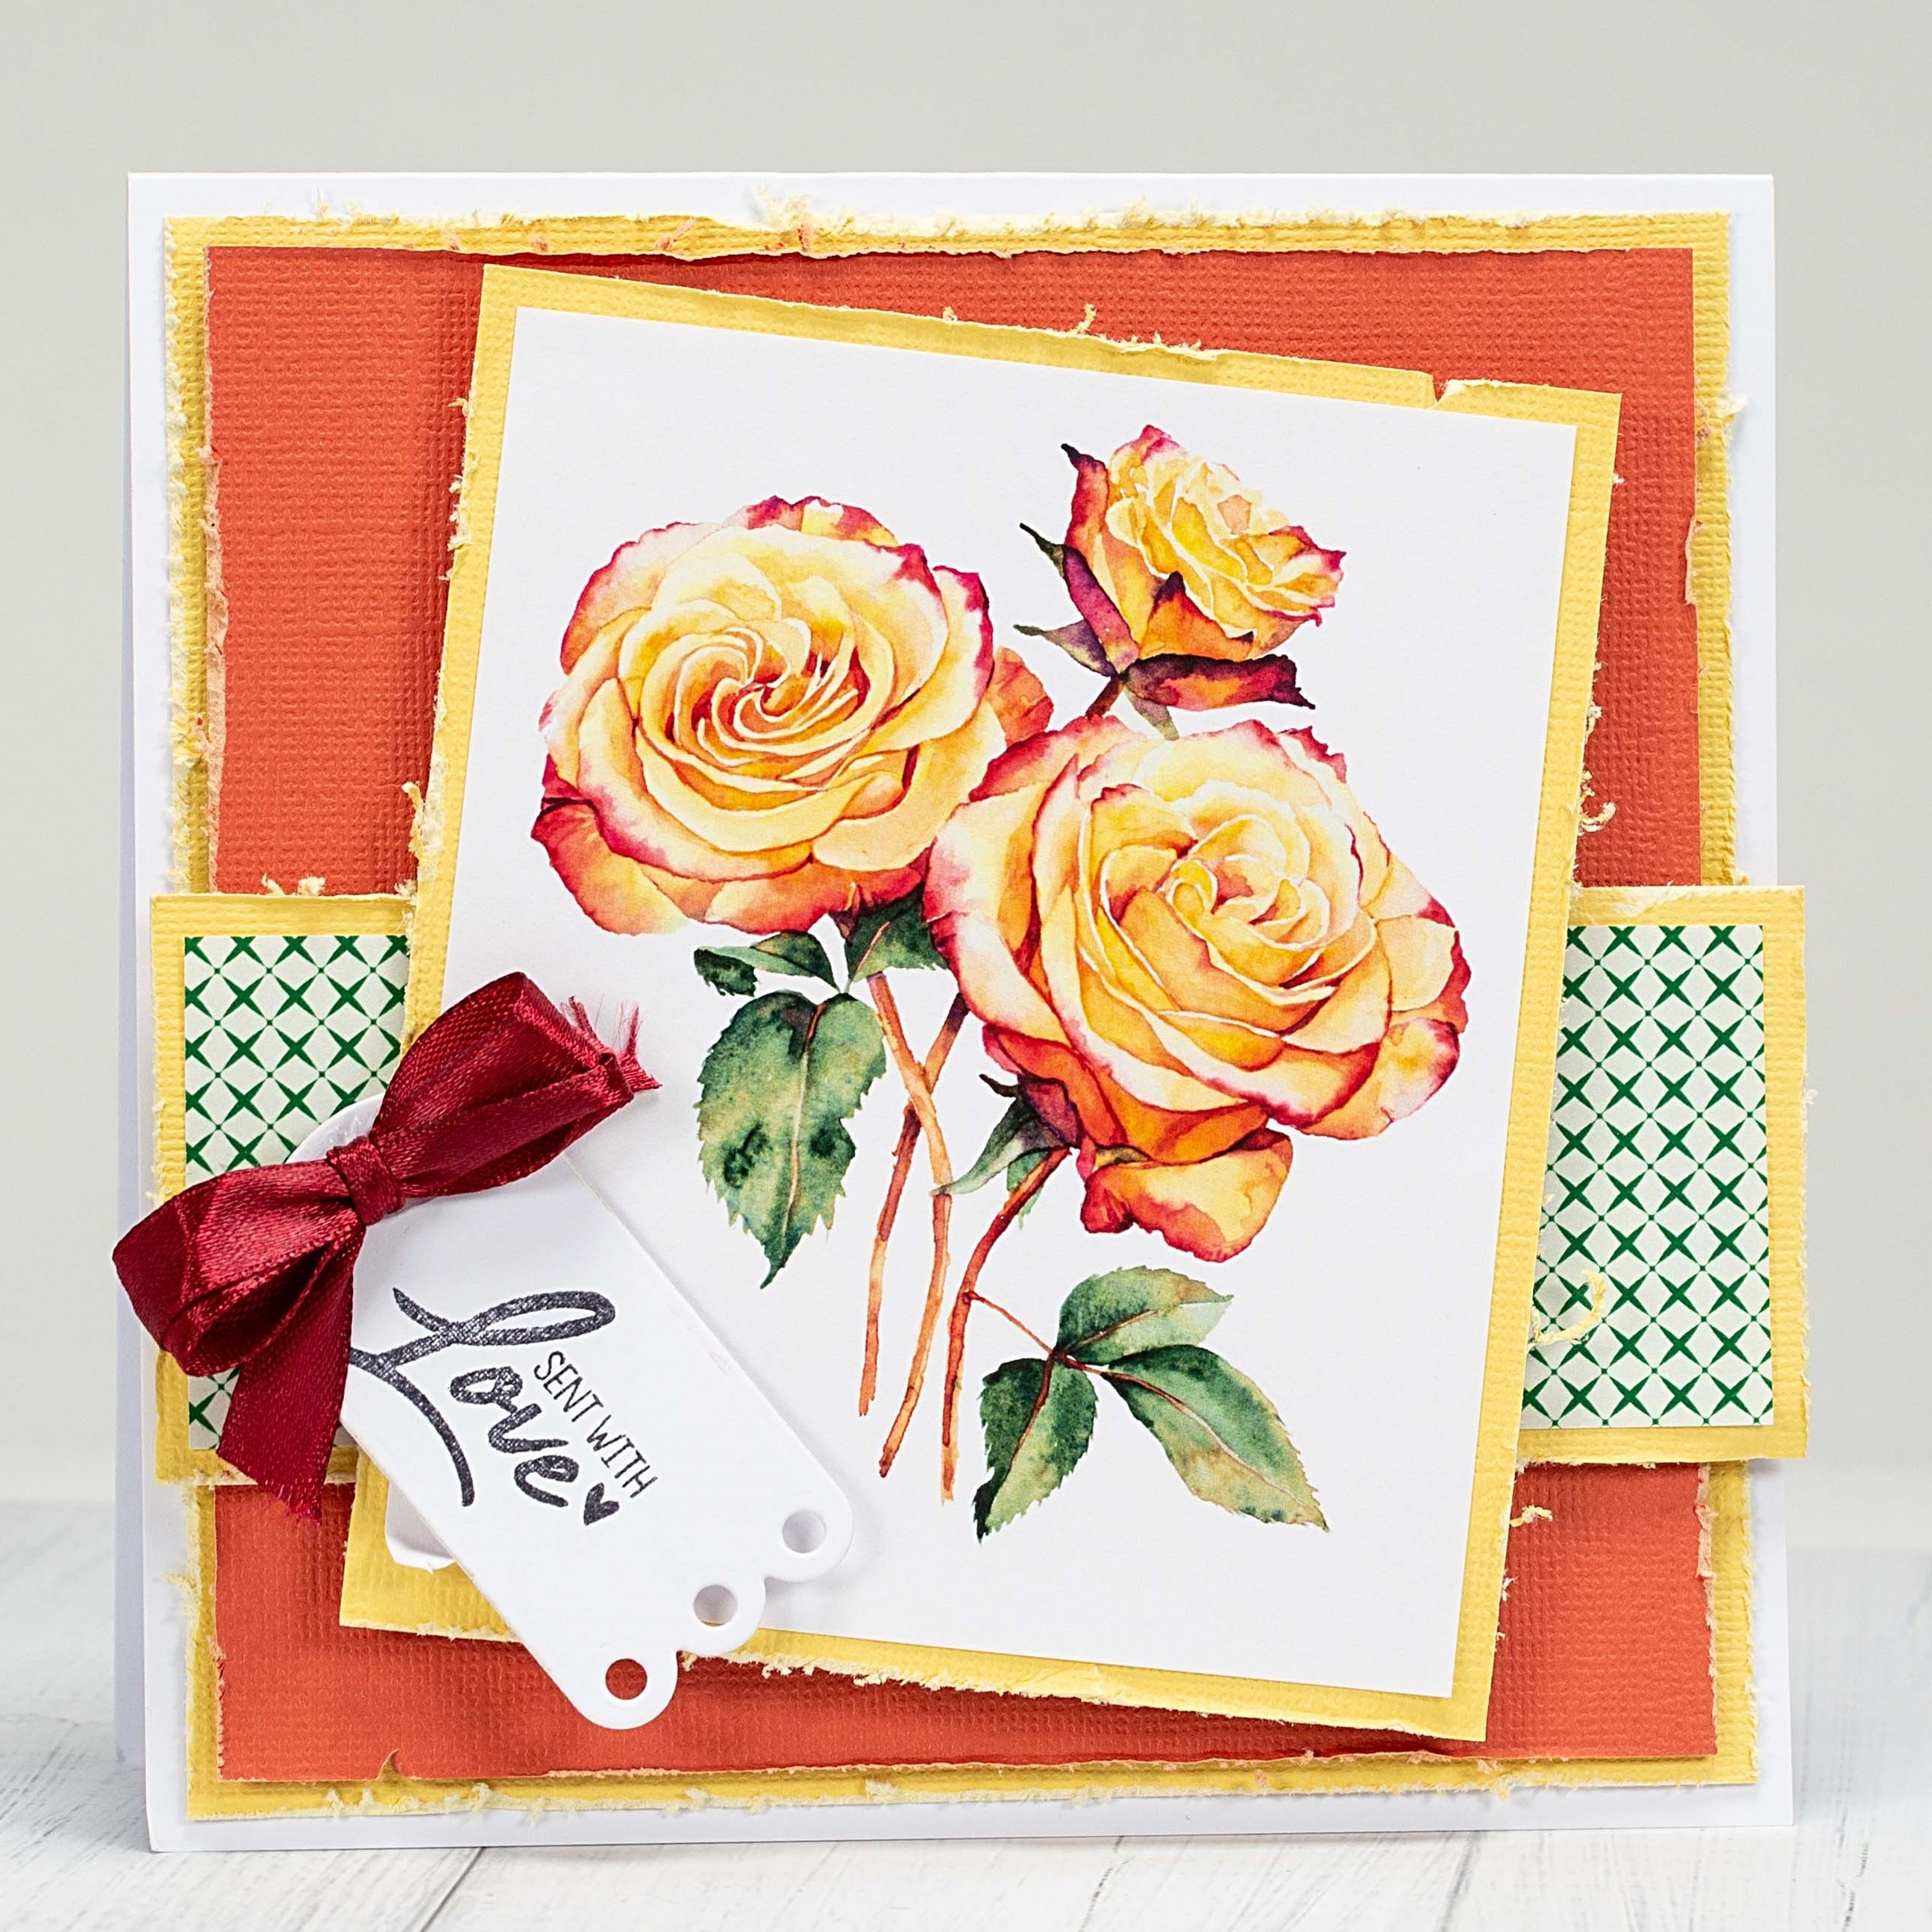 Flower card making ideas: scent with love